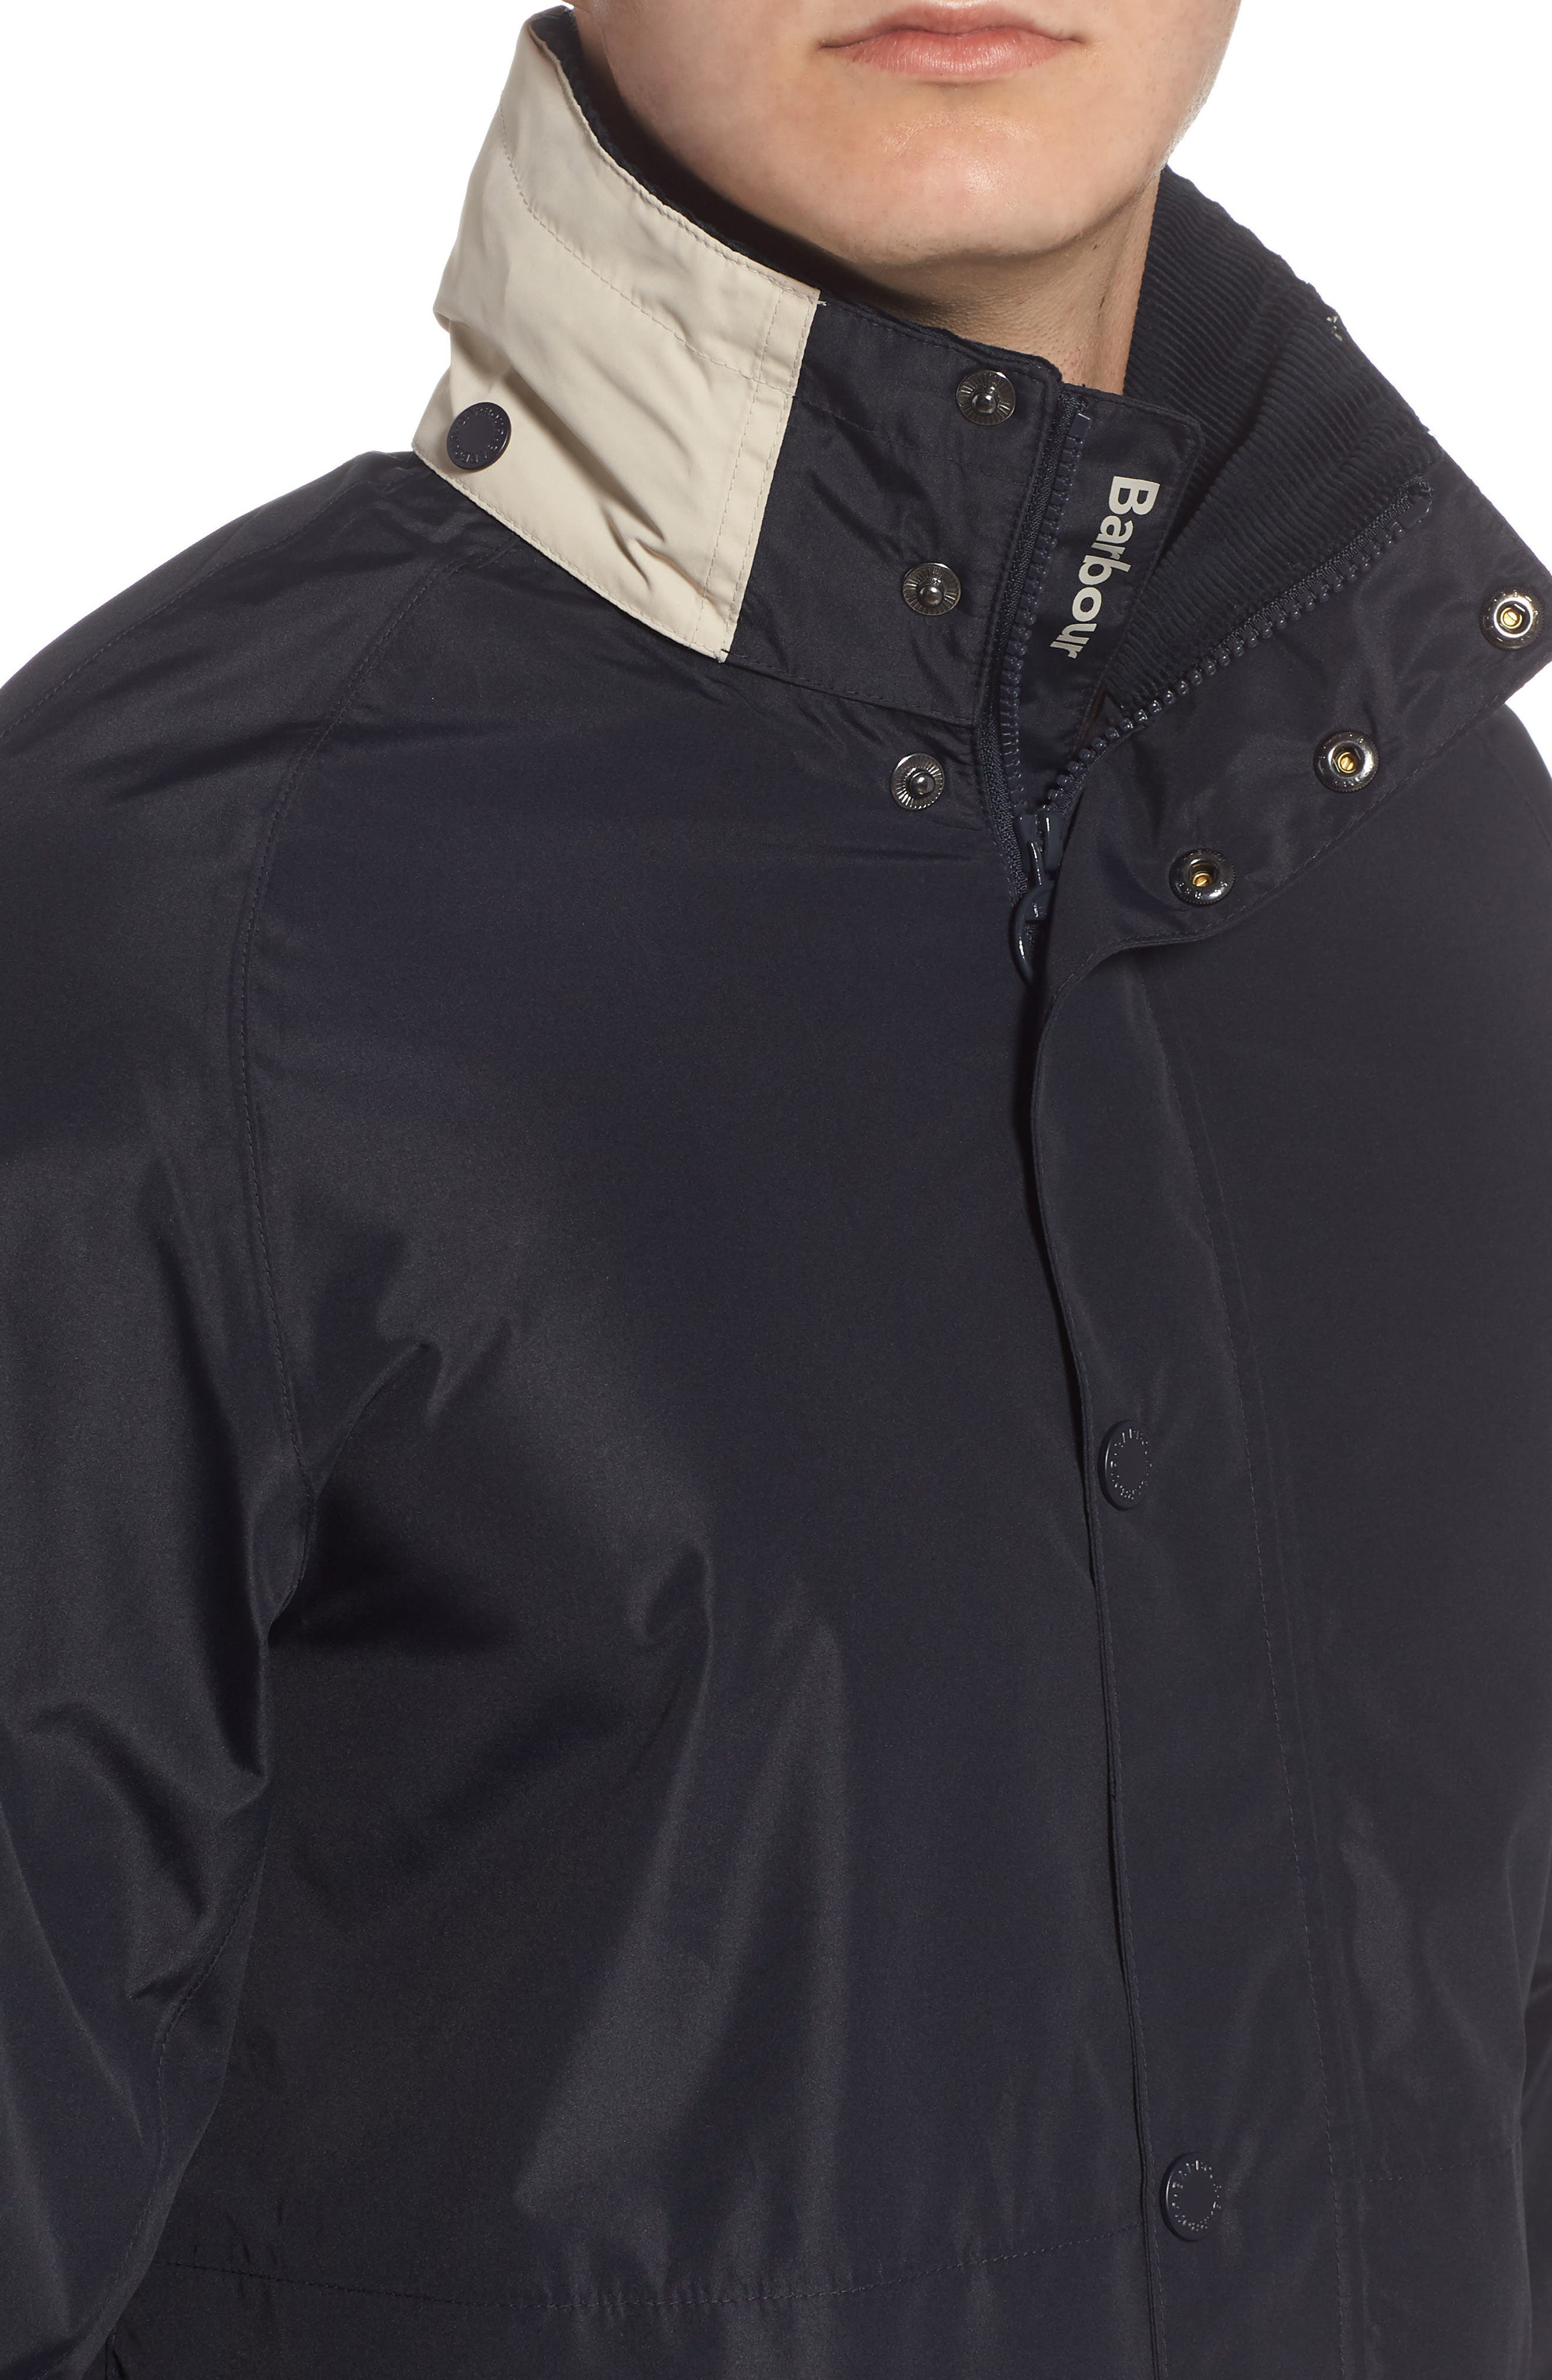 Nautical Dolan Waterproof Jacket,                             Alternate thumbnail 4, color,                             410